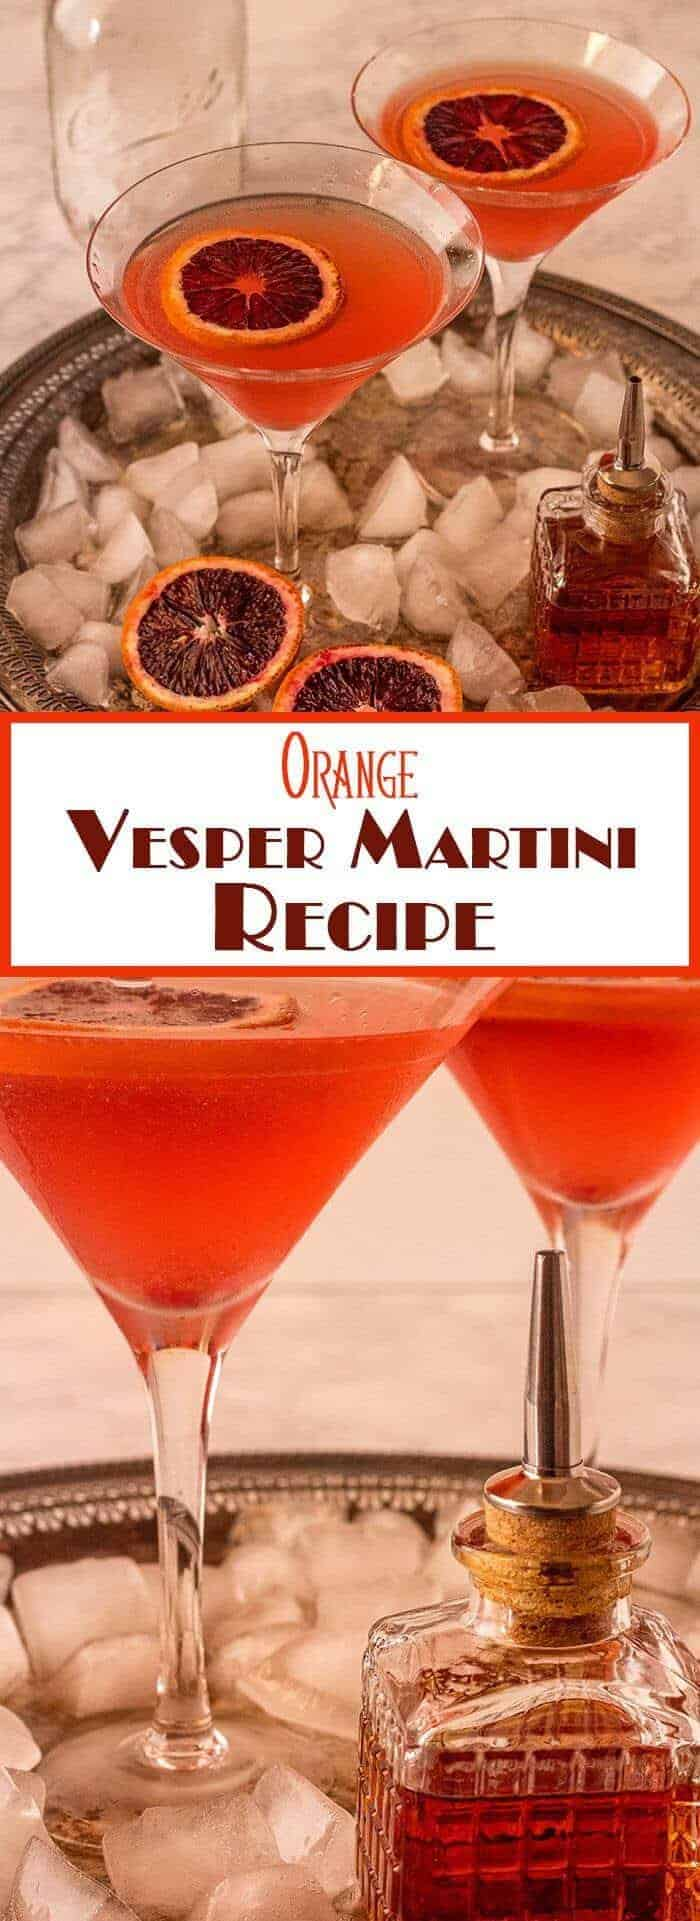 James Bond's drink of choice was the vesper martini... This Orange Vesper Martini Recipe stays somewhat true to the original recipe from Casino Royale, with the addition of fresh orange juice, an orange slice or twist, and orange bitters. Bone dry with lots of complex flavor, this martini is a perfect year 'round sipper! Cocktails | Gin Cocktails | Orange Cocktails | Martini Variation | Vesper Martini Variation